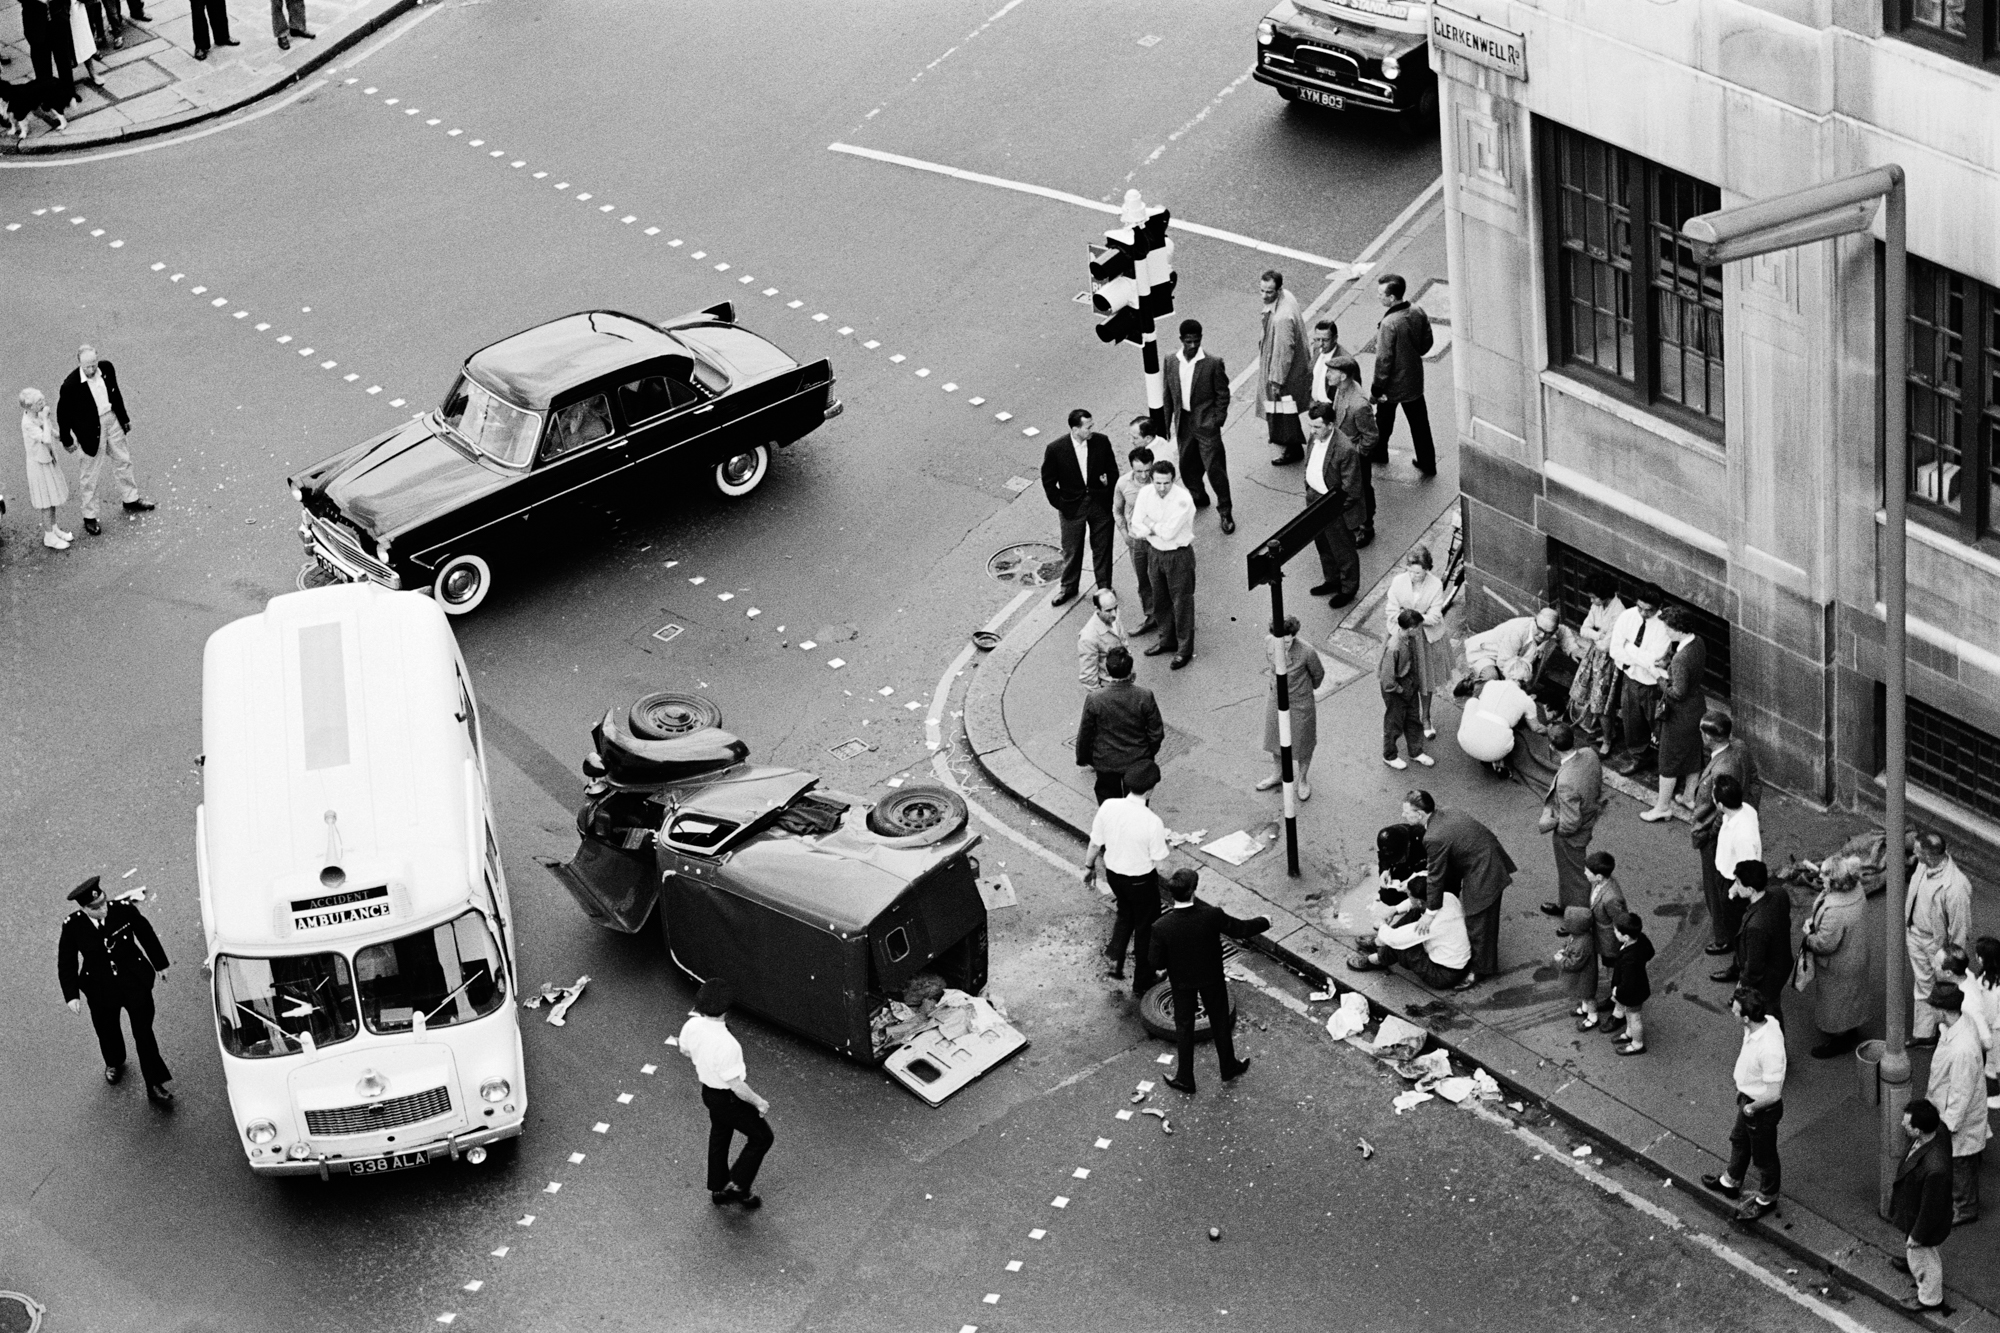 LONDON LIFE - Accident - Clerkenwell - 1962